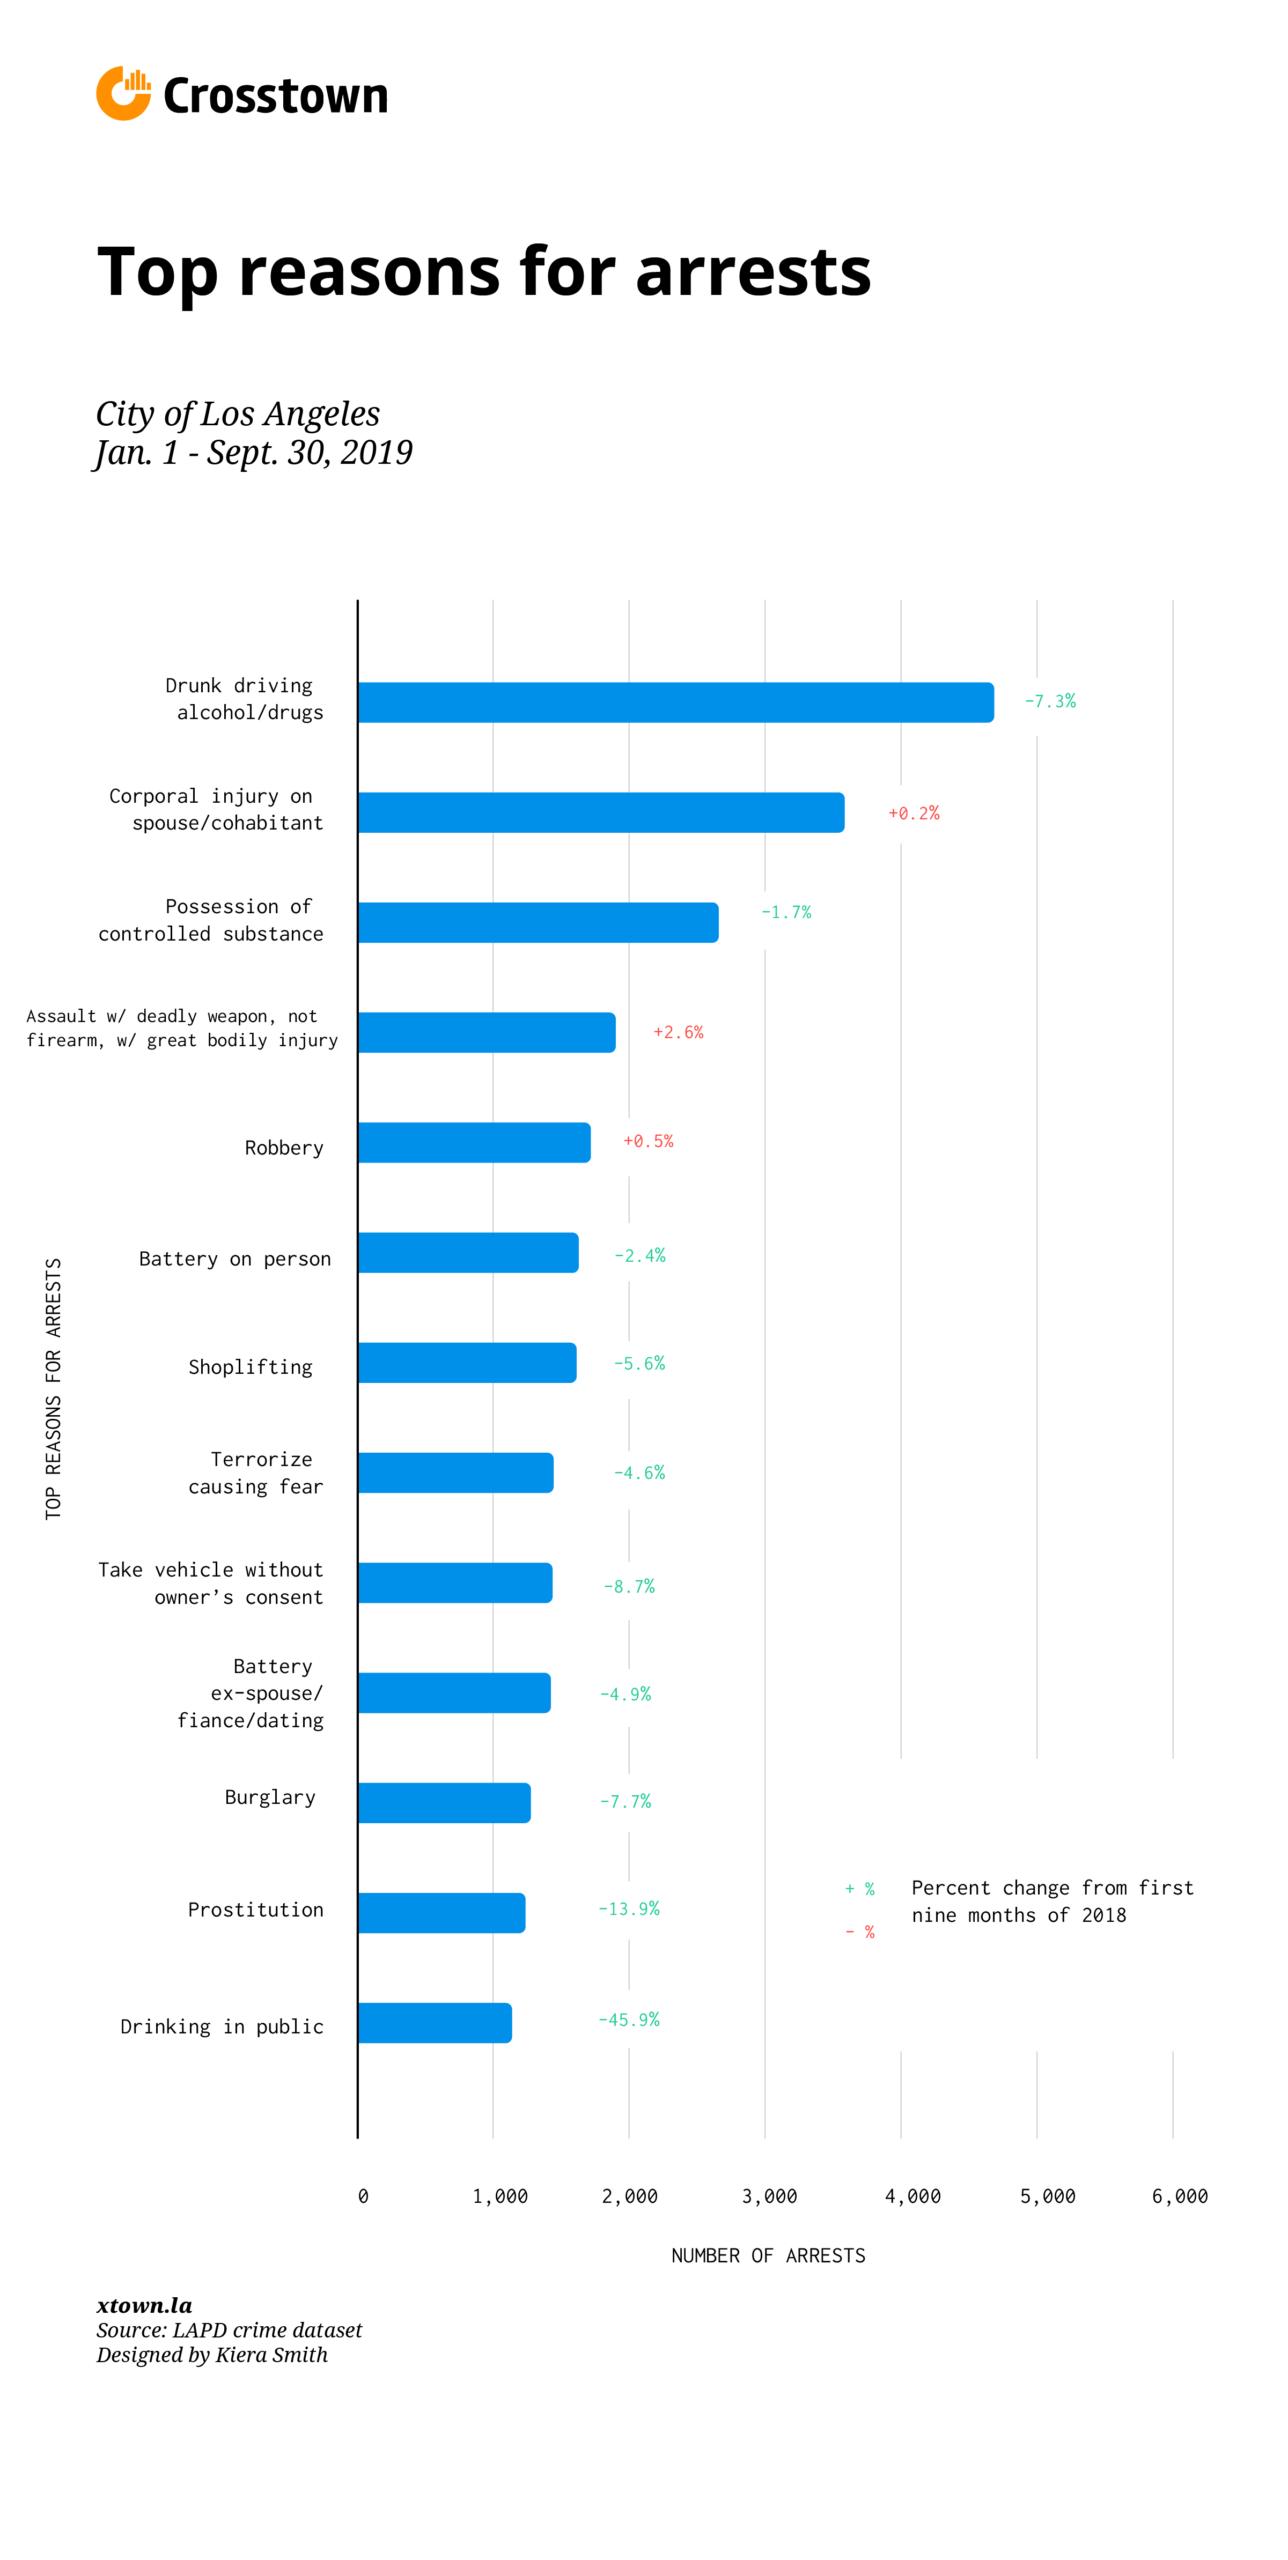 Top reasons for arrests graphic